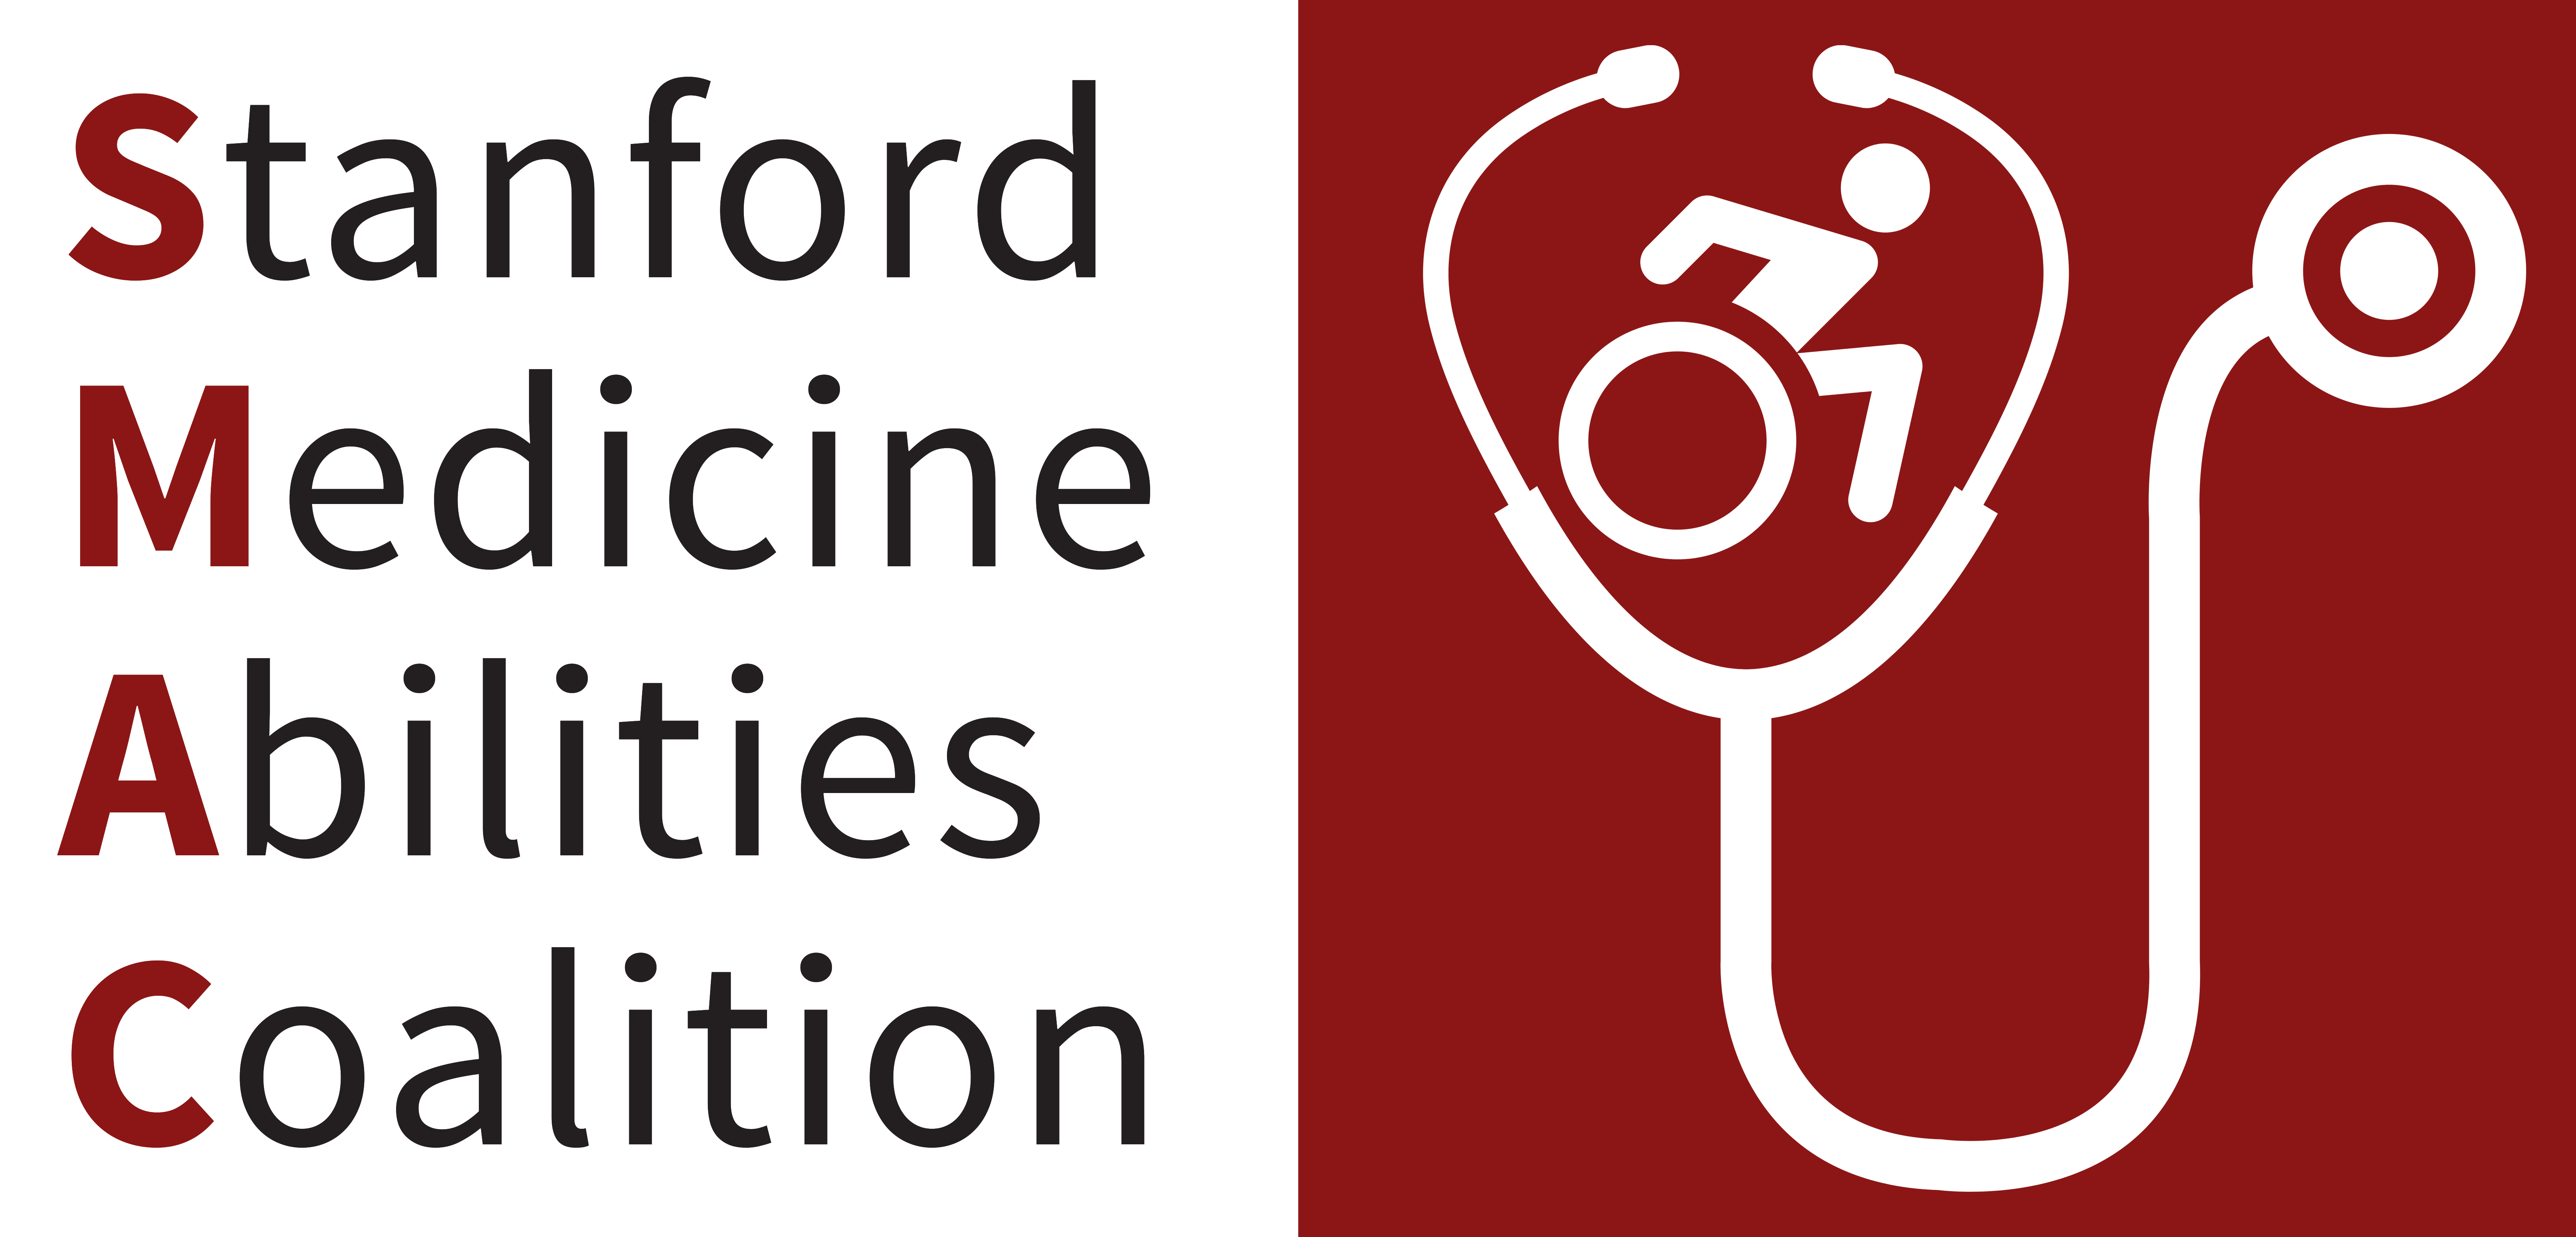 Text 'Stanford Medicine Abilities Coalition' besides a graphic of a stethoscope with a graphic of a person moving forward in a wheelchair above it